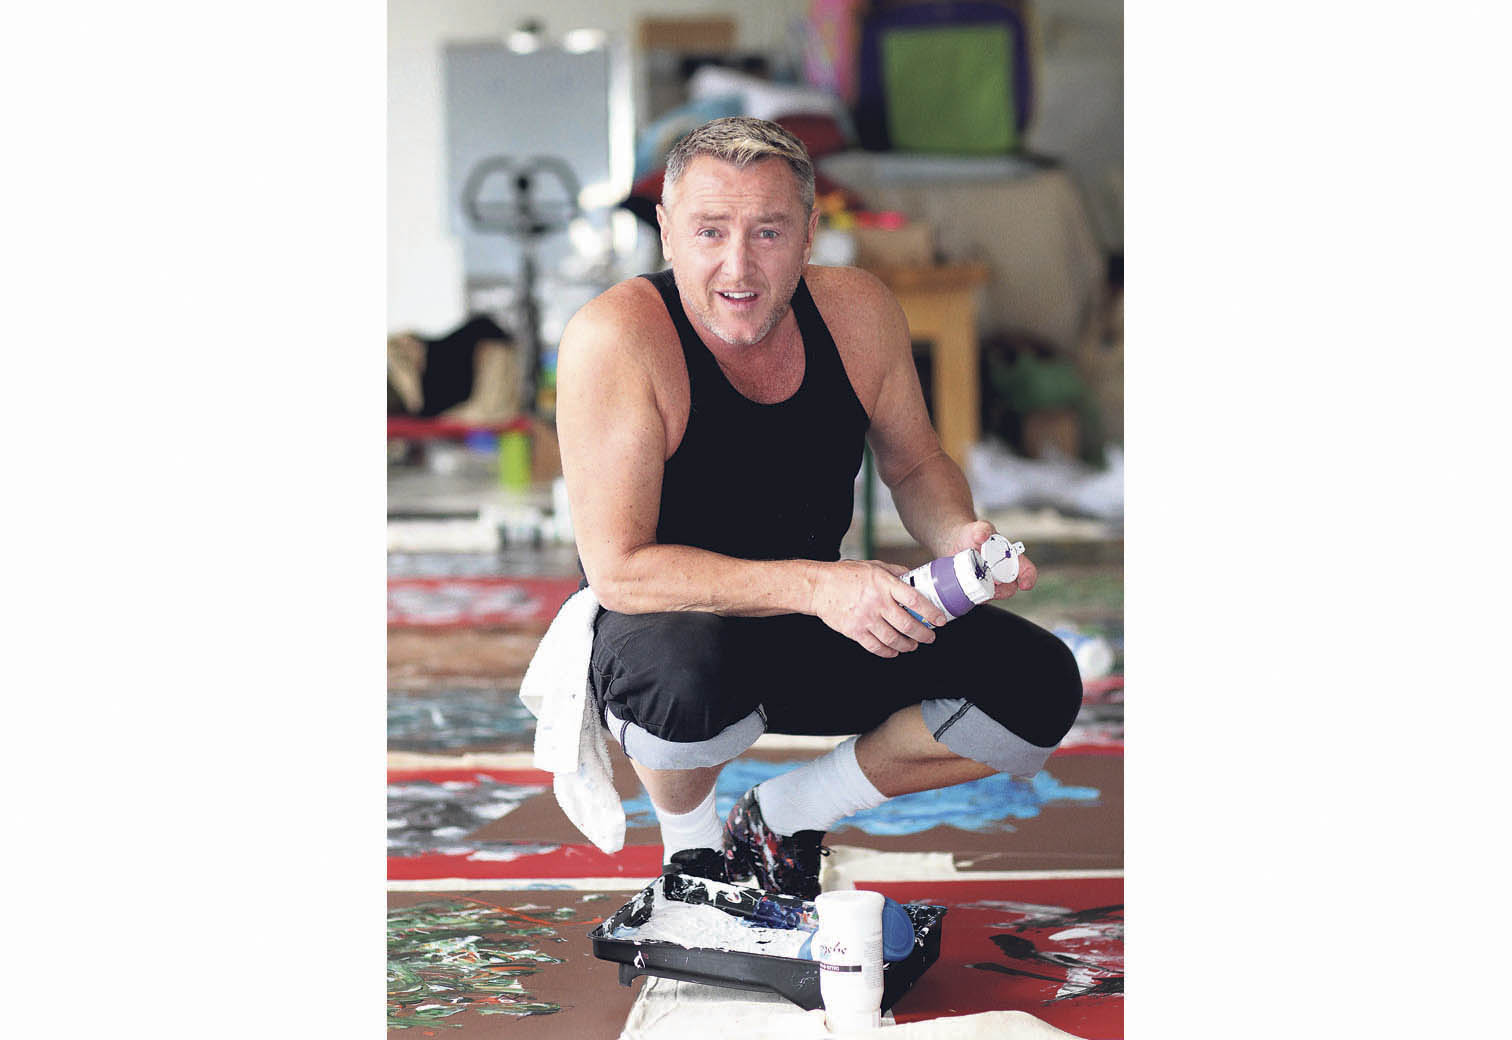 Flatley in his studio. (Photo: Bryan McEvoy)